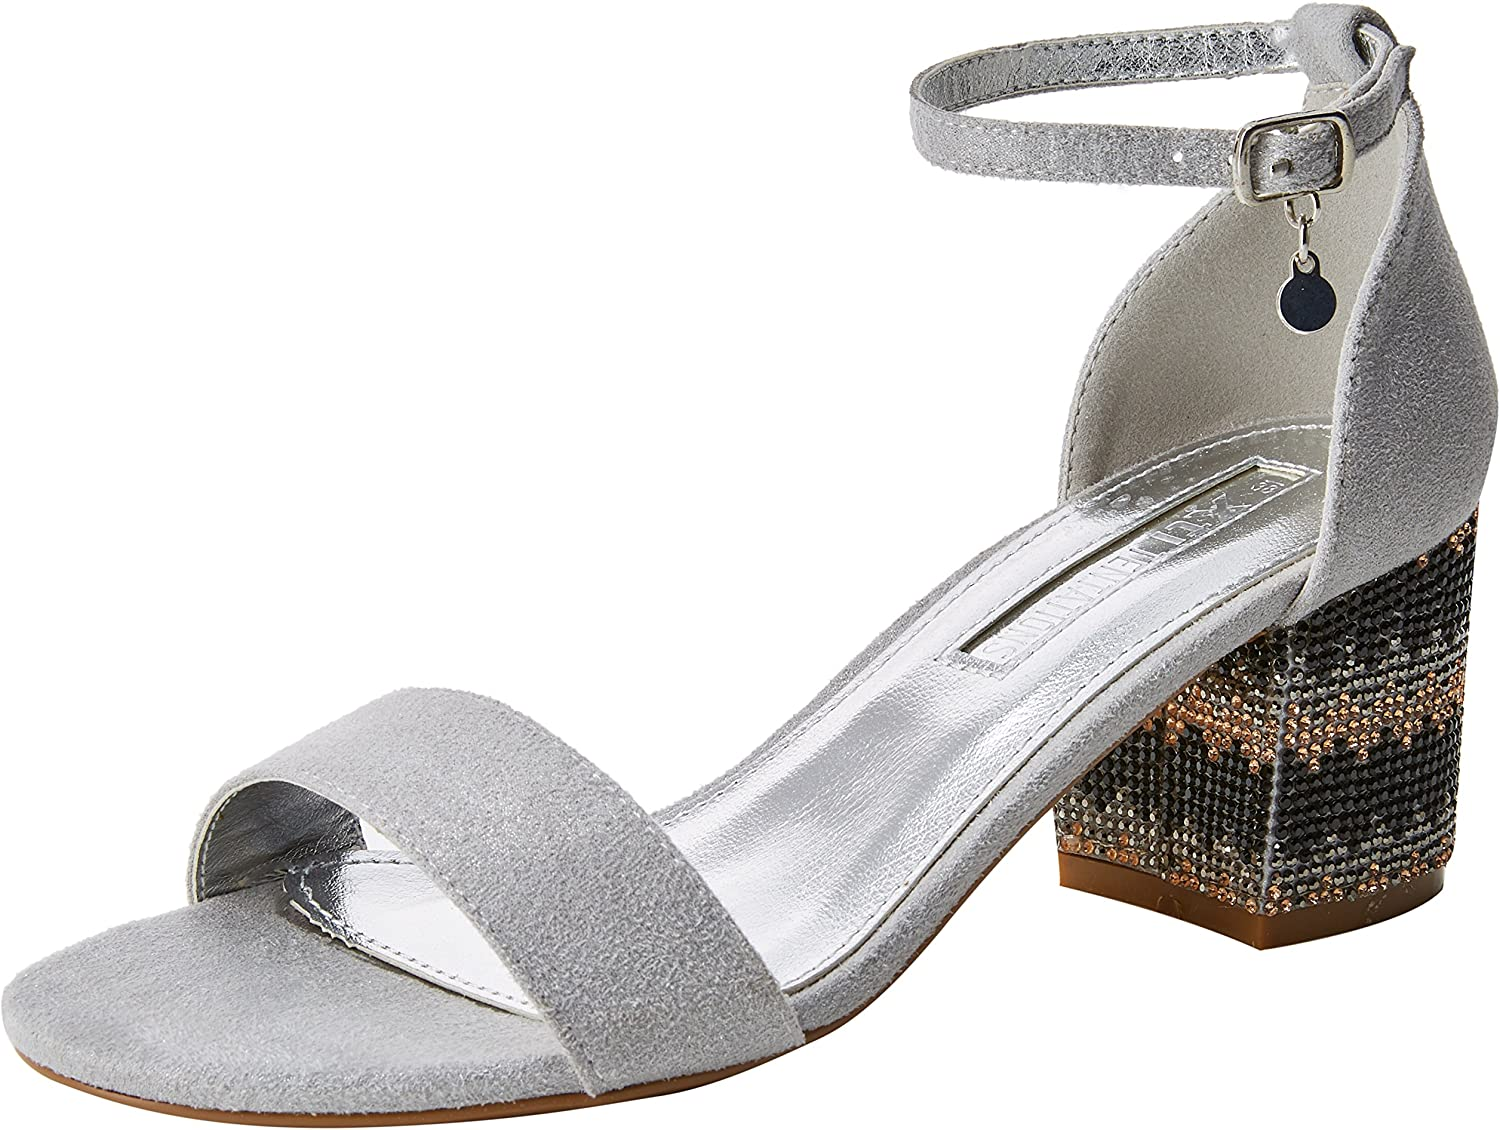 XTI TENTATIONS Women's shoes Low Heel Sandals 30702 silver